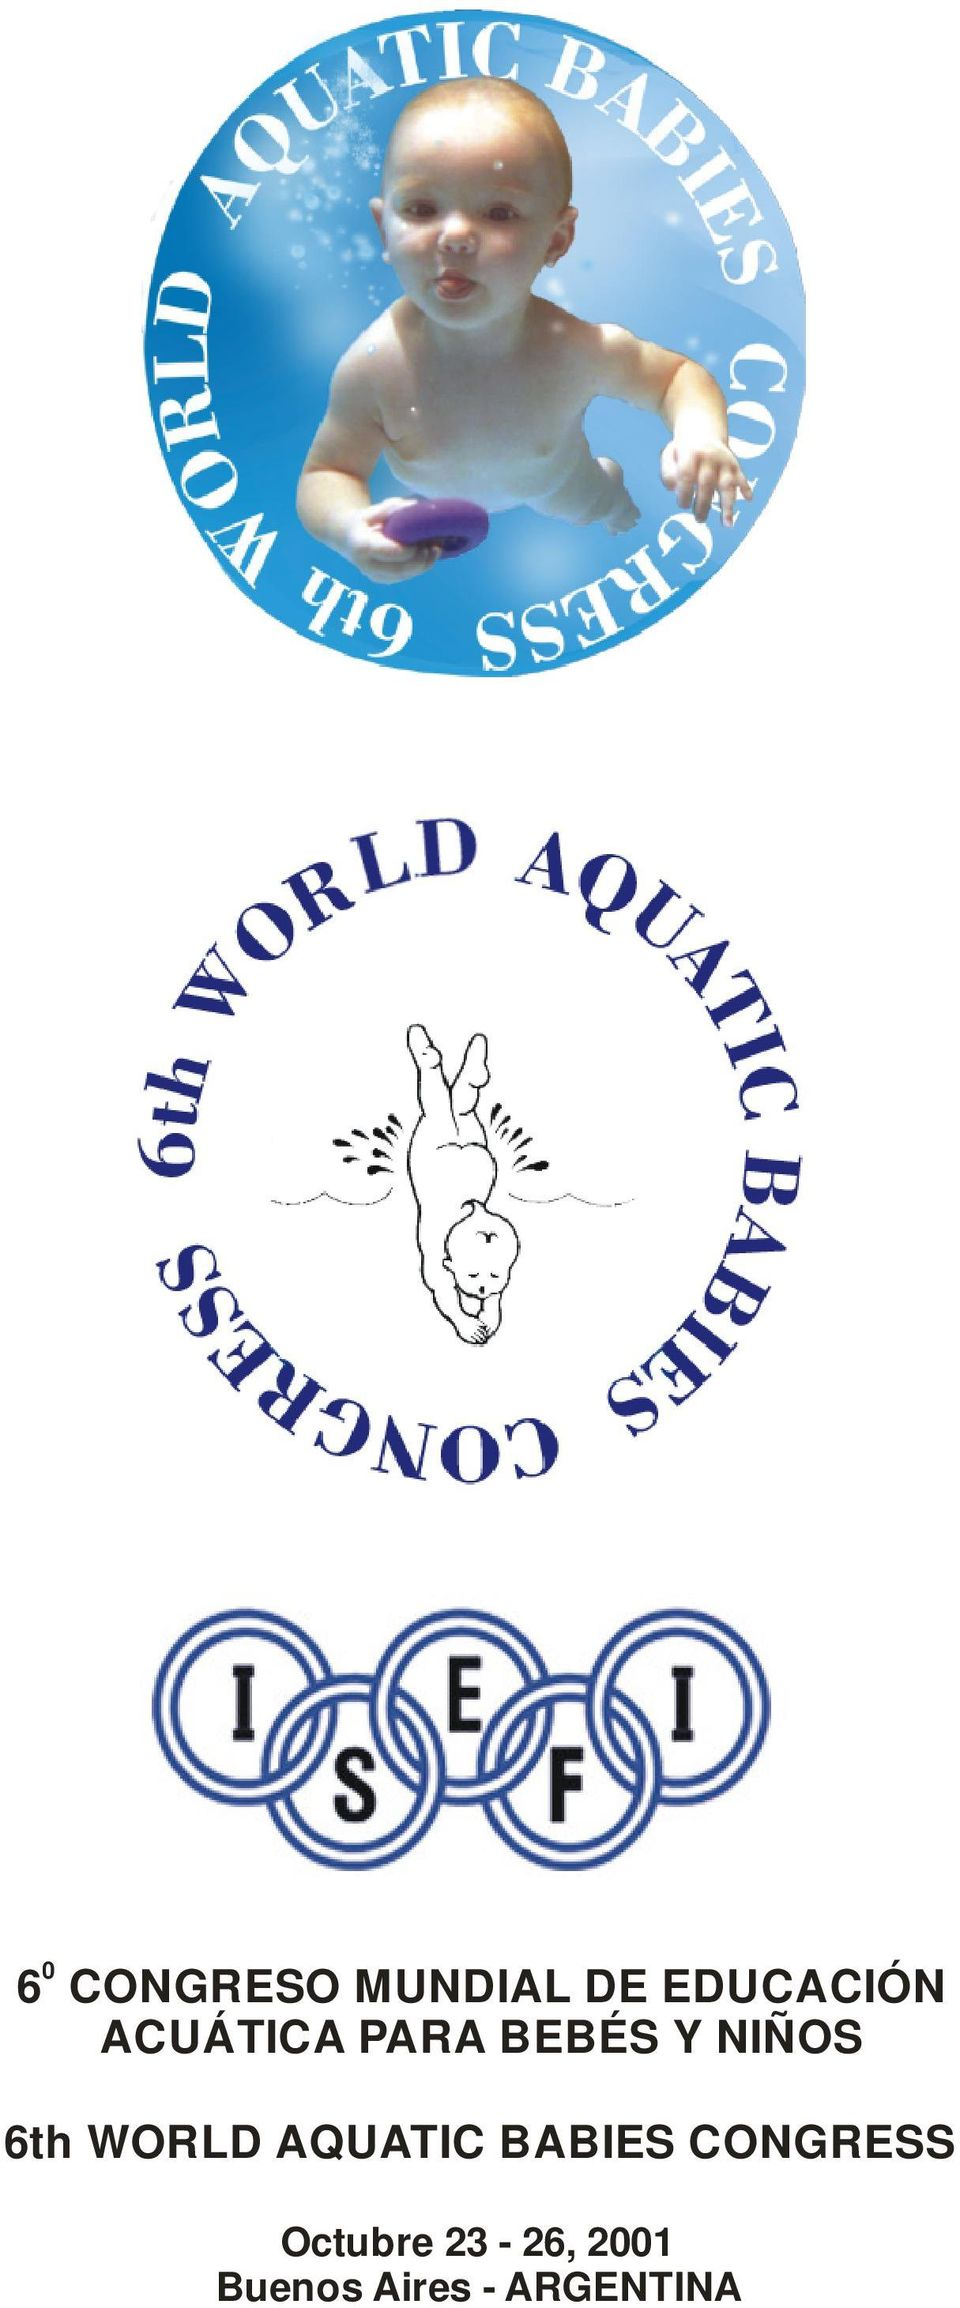 WORLD AQUATIC BABIES CONGRESS